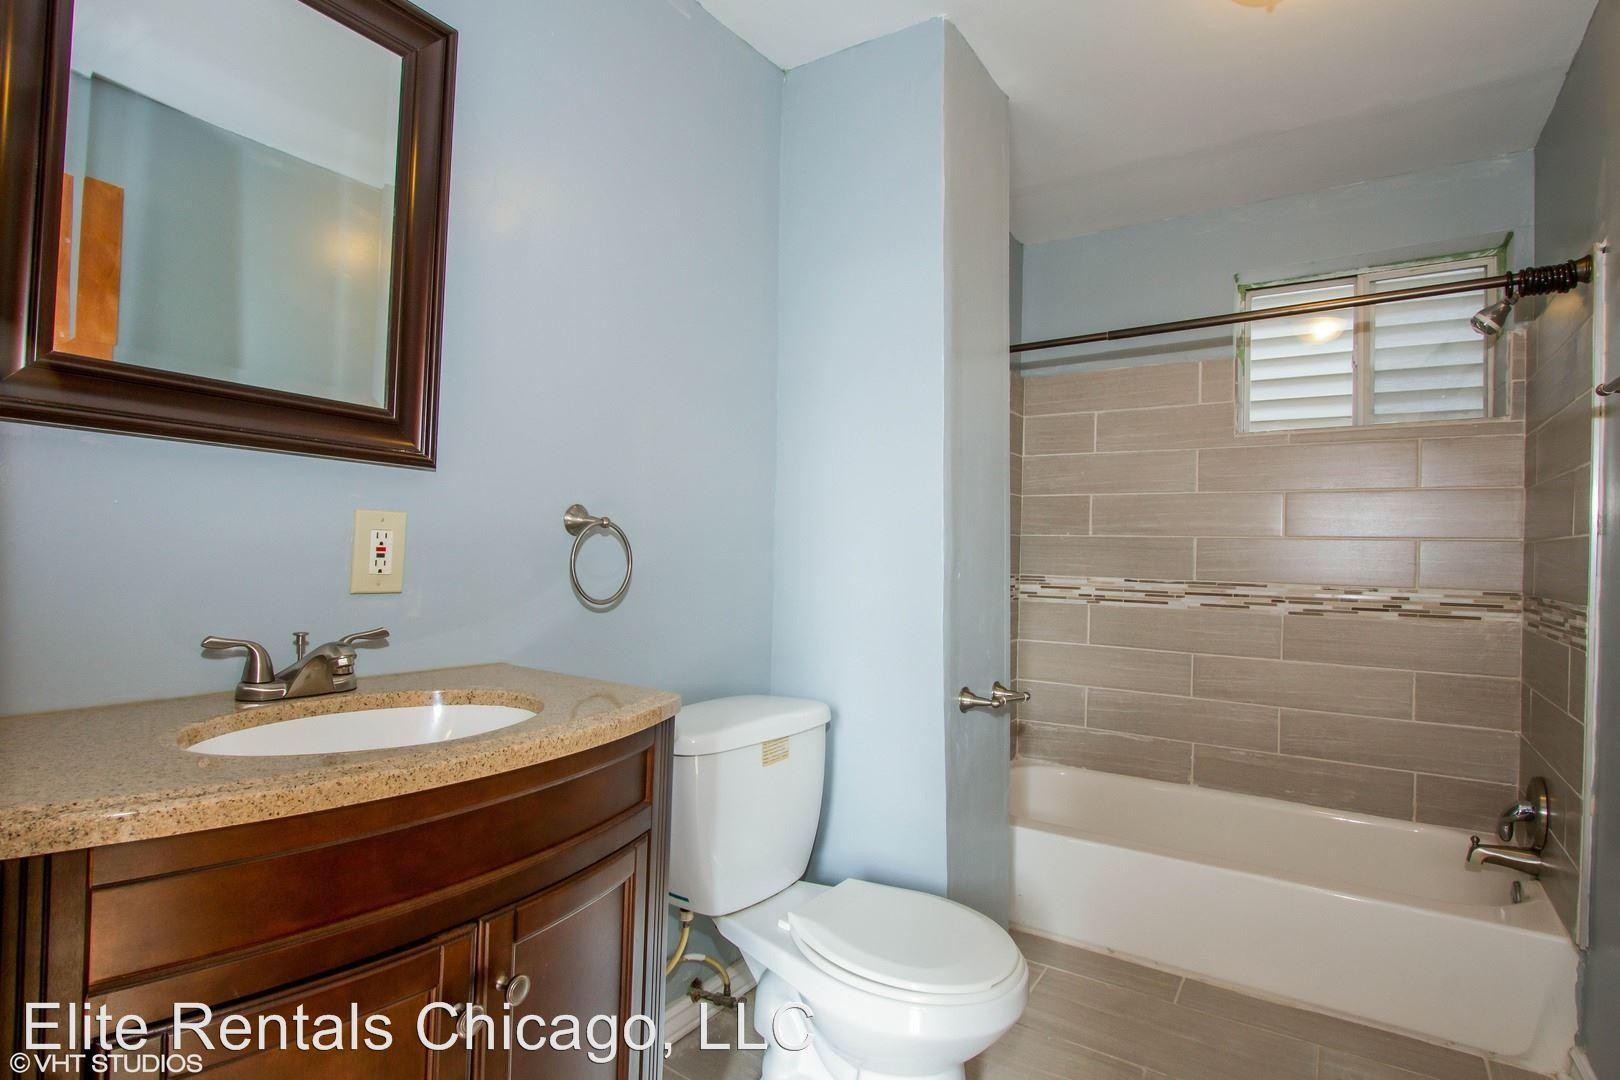 7533 S Dorchester Ave For Rent - Chicago, IL | Trulia